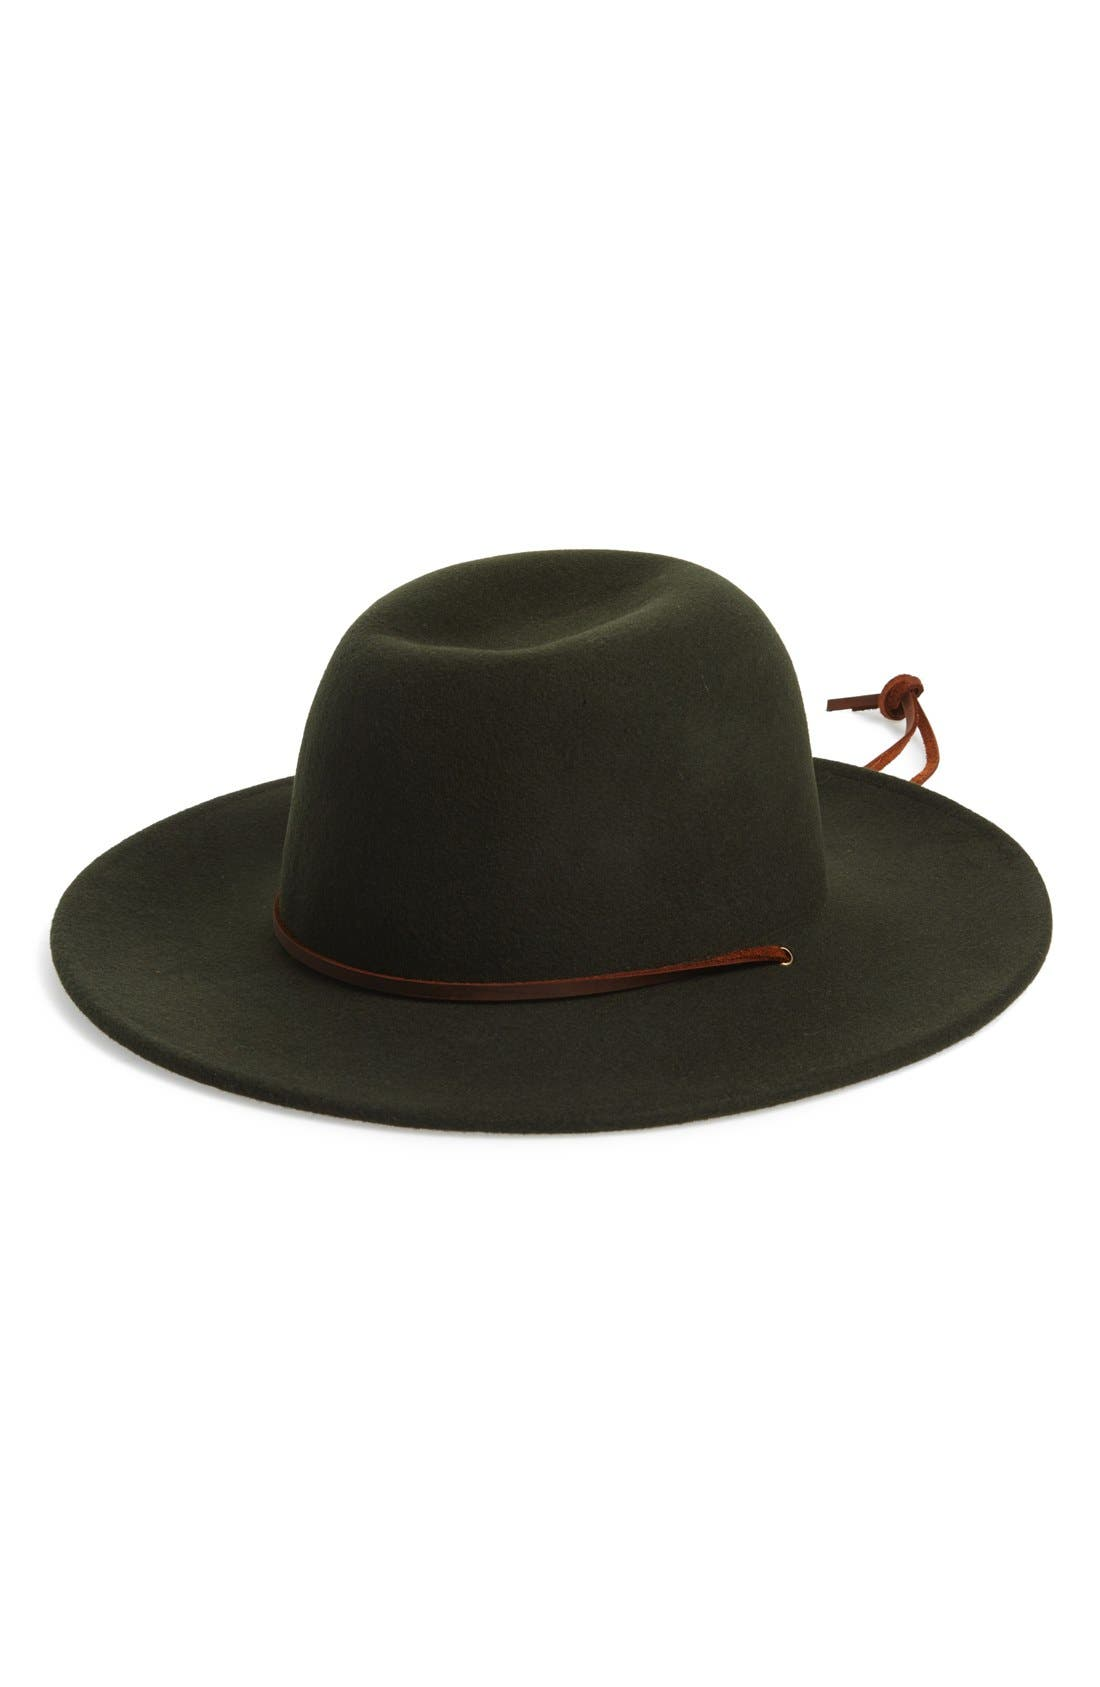 Alternate Image 1 Selected - Brixton 'Tiller' Rancher Hat